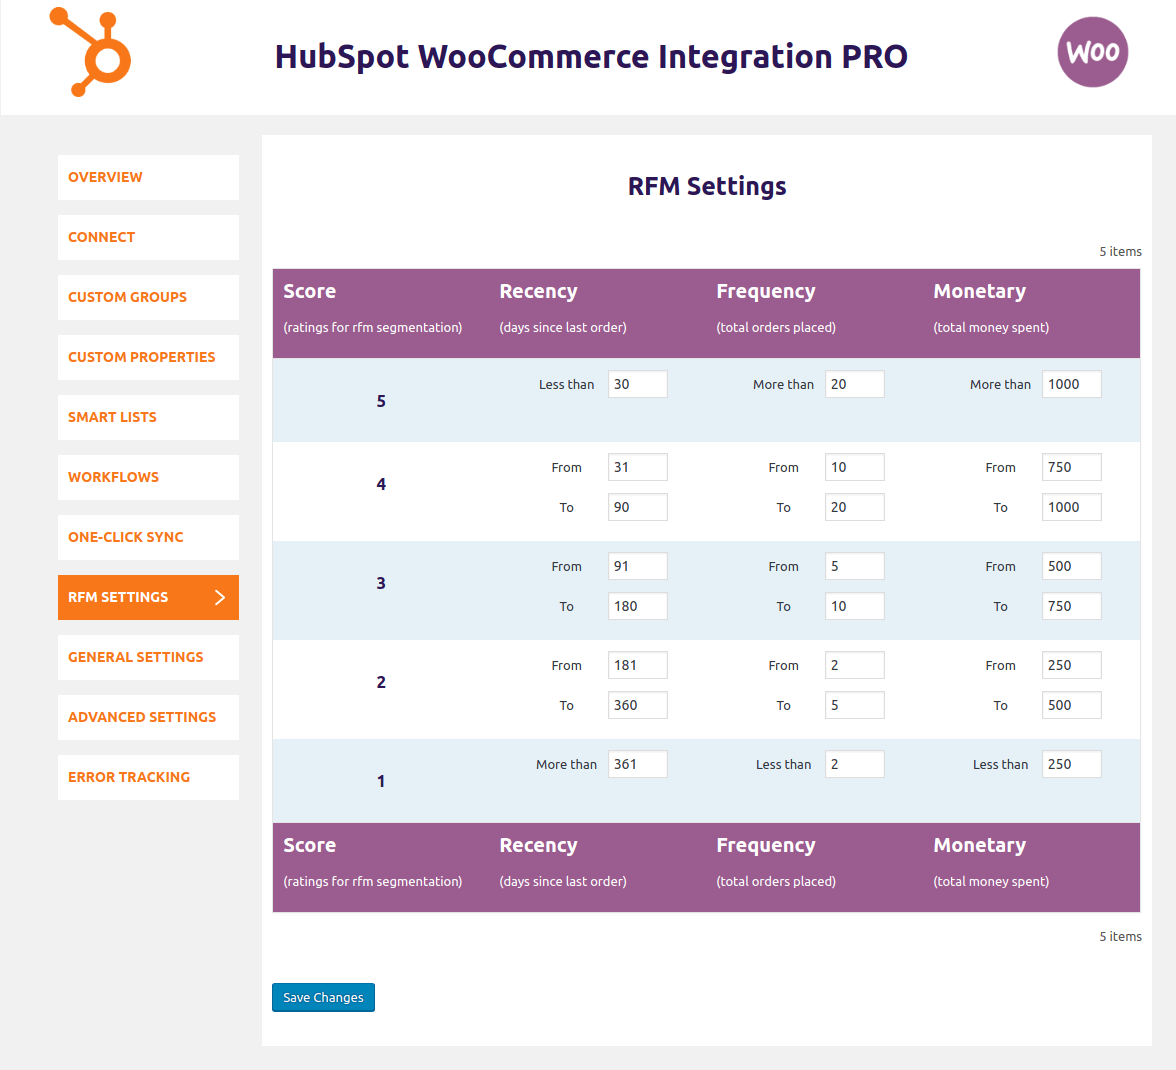 hubspot-woocommerce-integration-rfm-settings